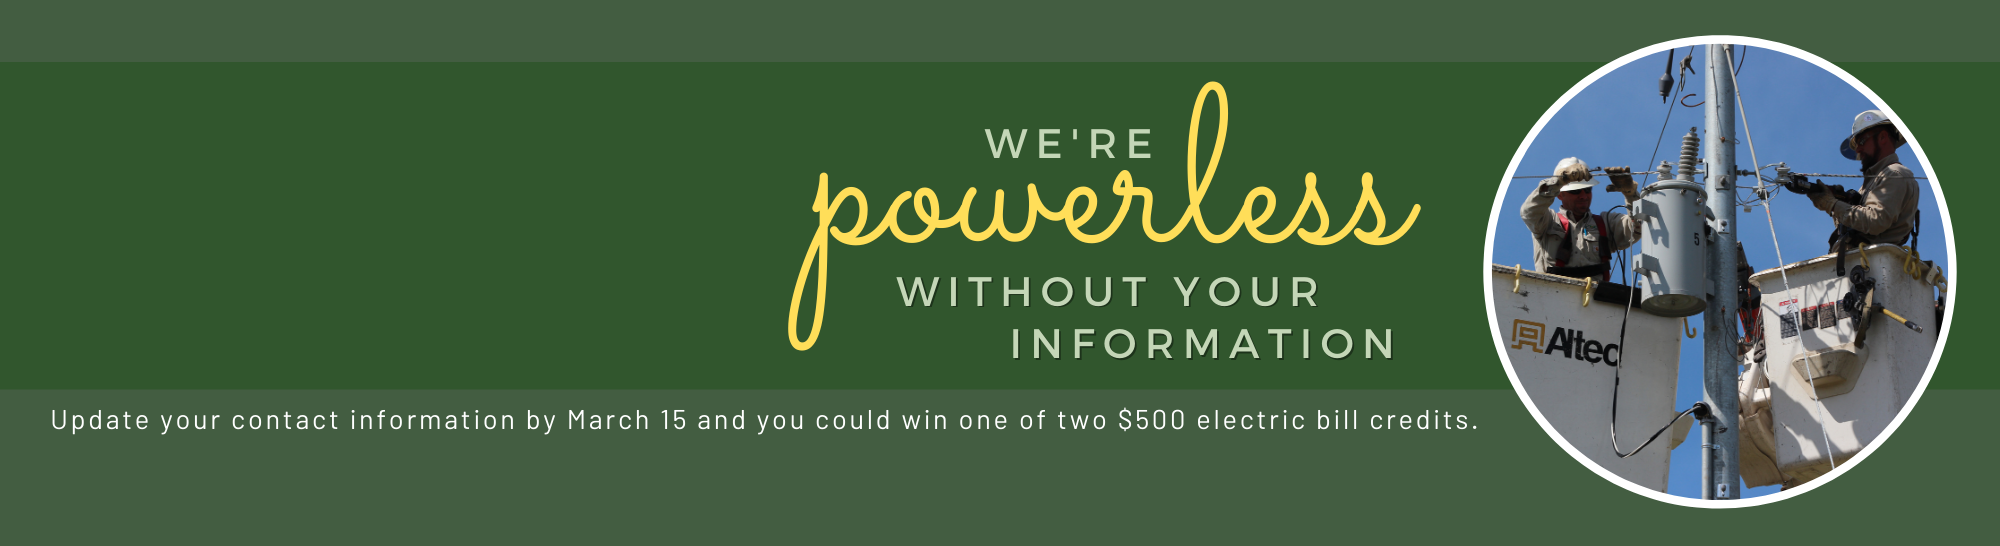 Update your information to be entered to win one of two $500 bill credits